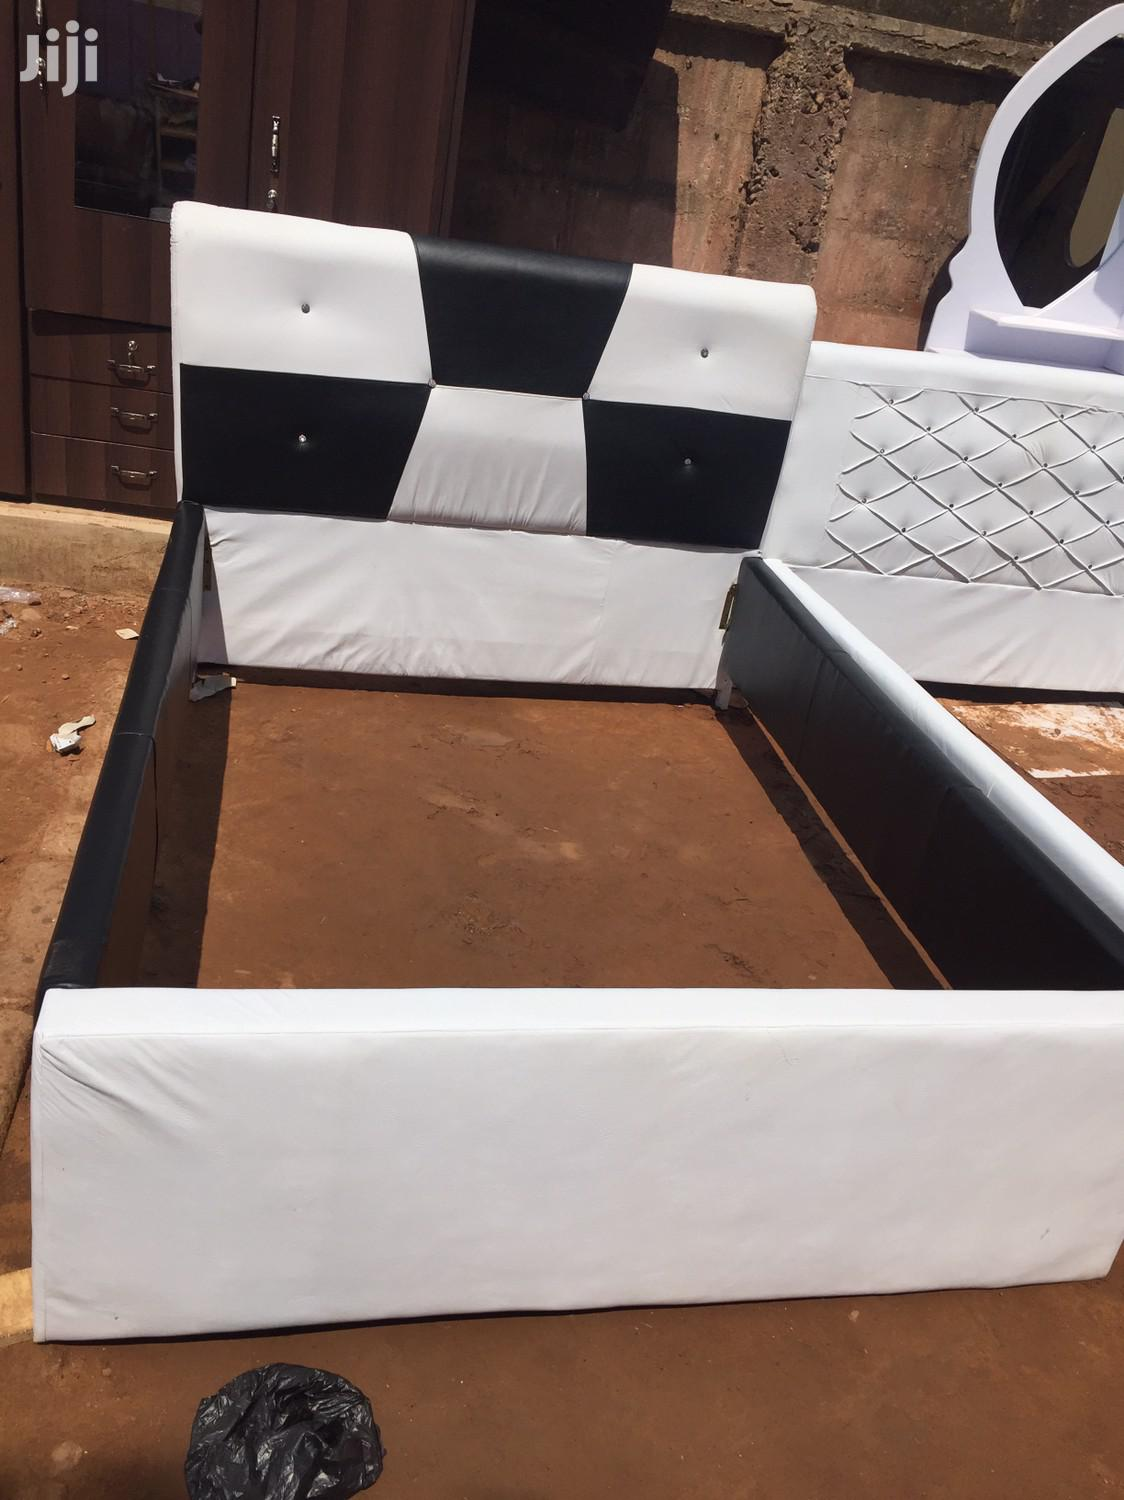 Quality Leather Bed Frames at Affordable Price. | Furniture for sale in Zongo, Greater Accra, Ghana